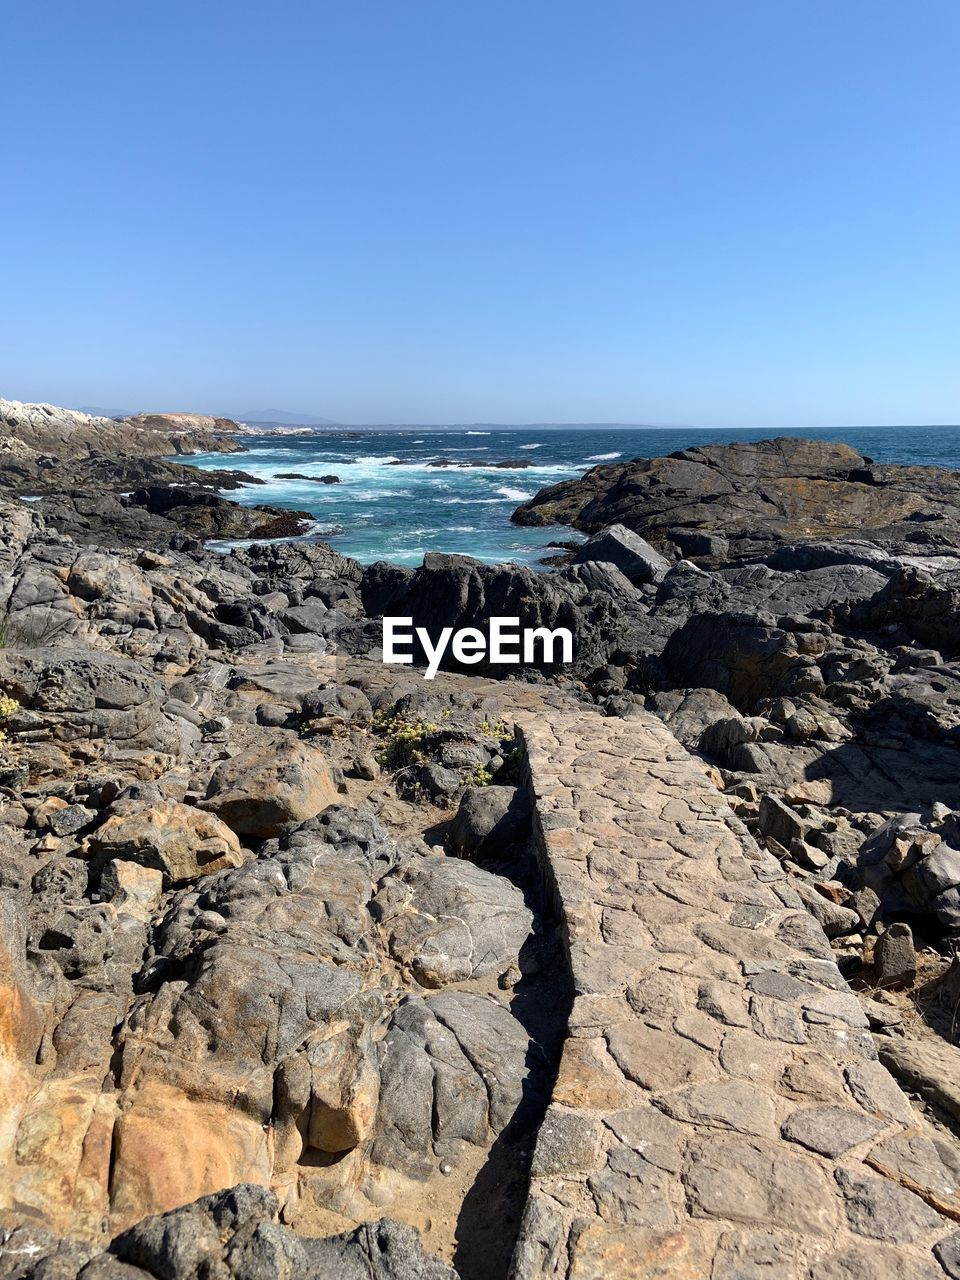 sky, sea, rock, water, solid, rock - object, clear sky, beauty in nature, nature, scenics - nature, horizon, copy space, land, horizon over water, day, beach, rock formation, tranquility, tranquil scene, no people, outdoors, rocky coastline, eroded